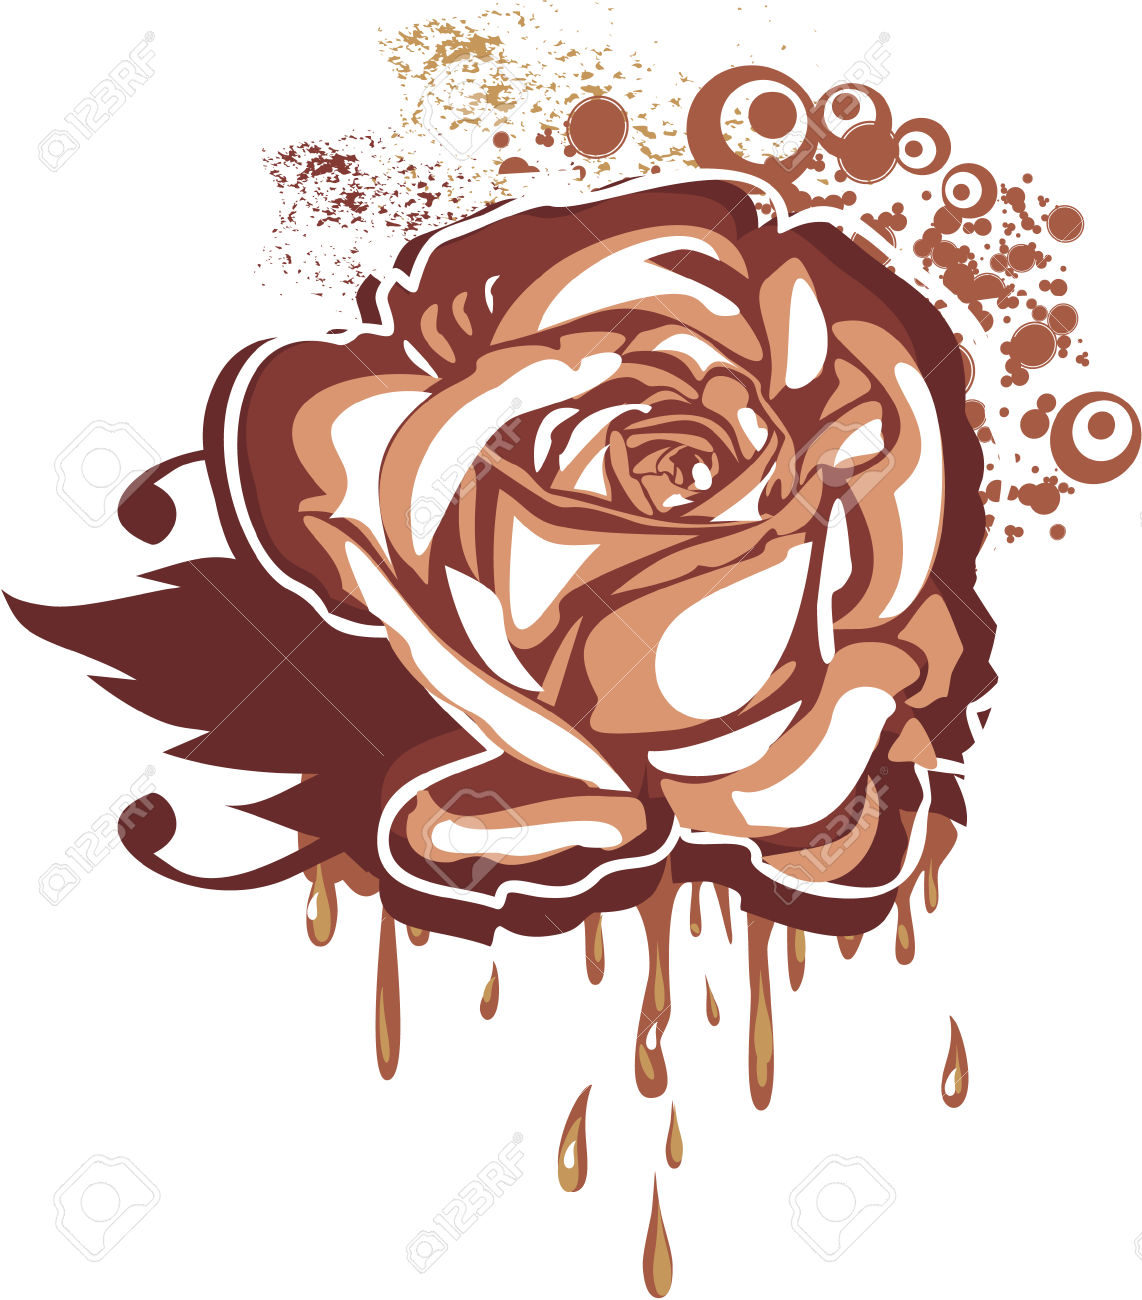 Chocolate Rose Royalty Free Cliparts, Vectors, And Stock.